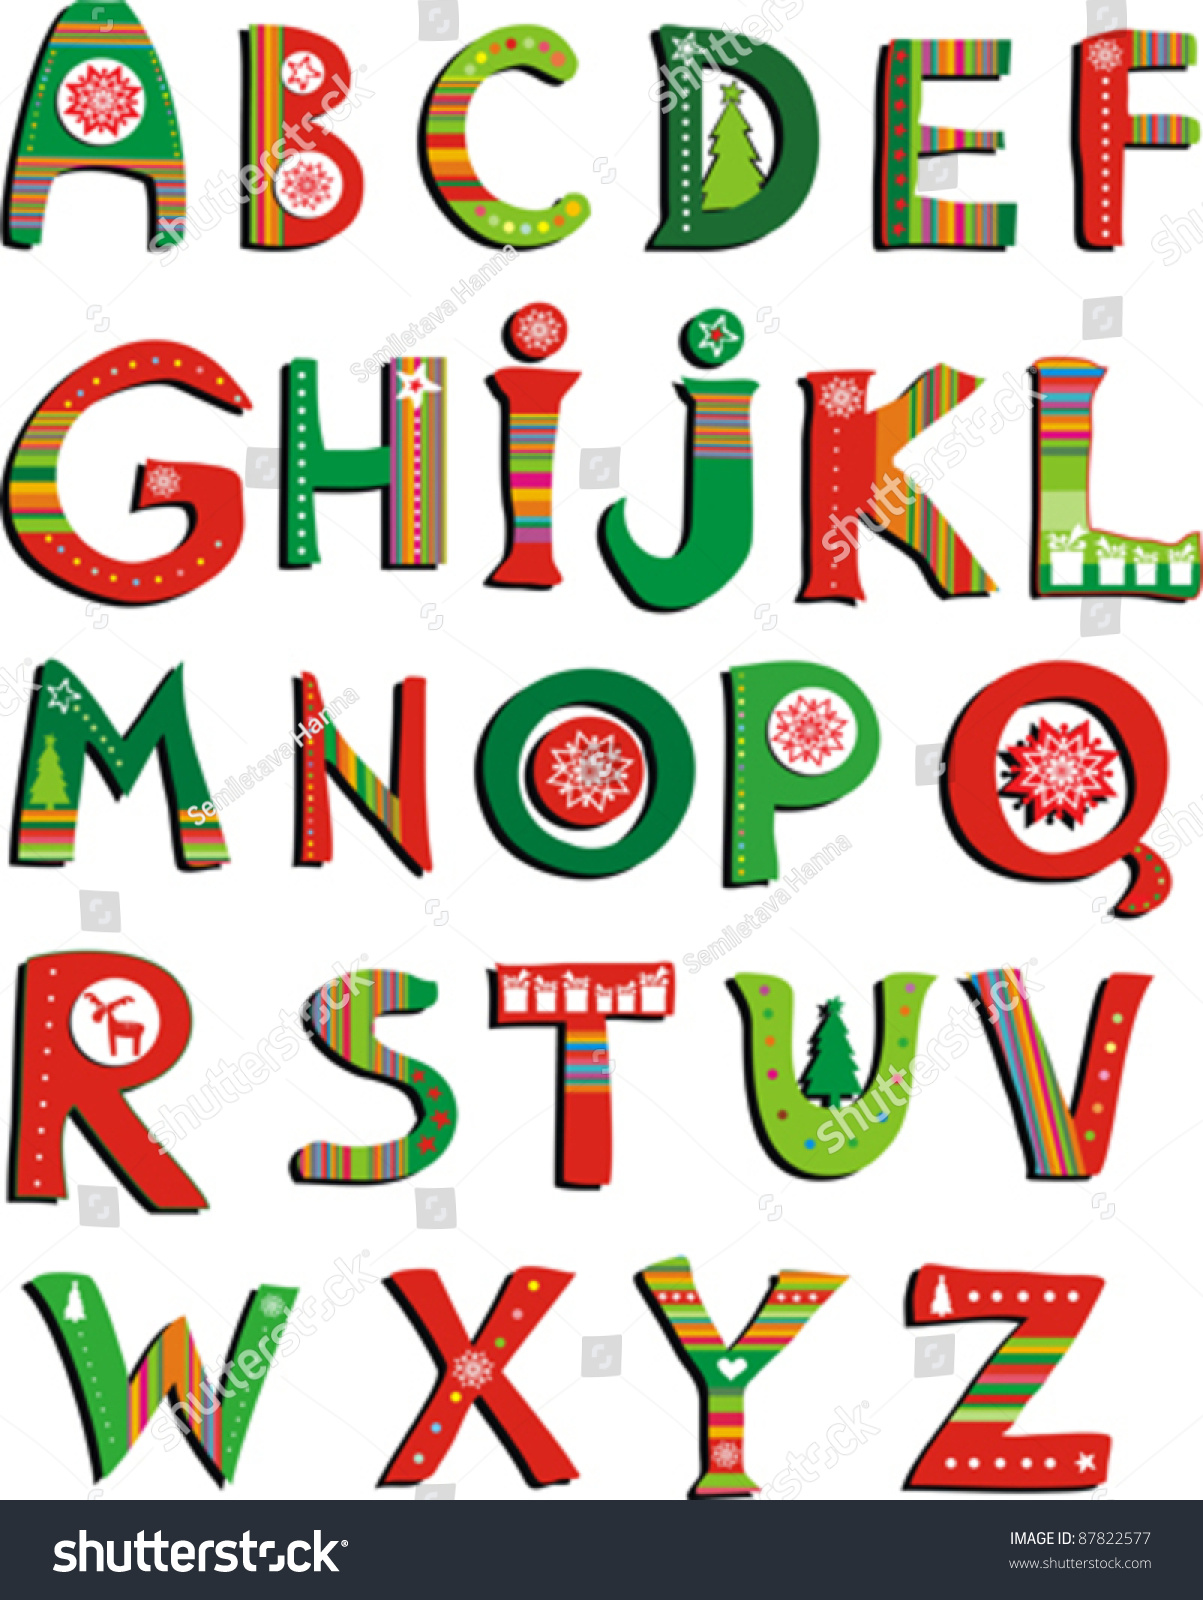 christmas letter clipart free - photo #34